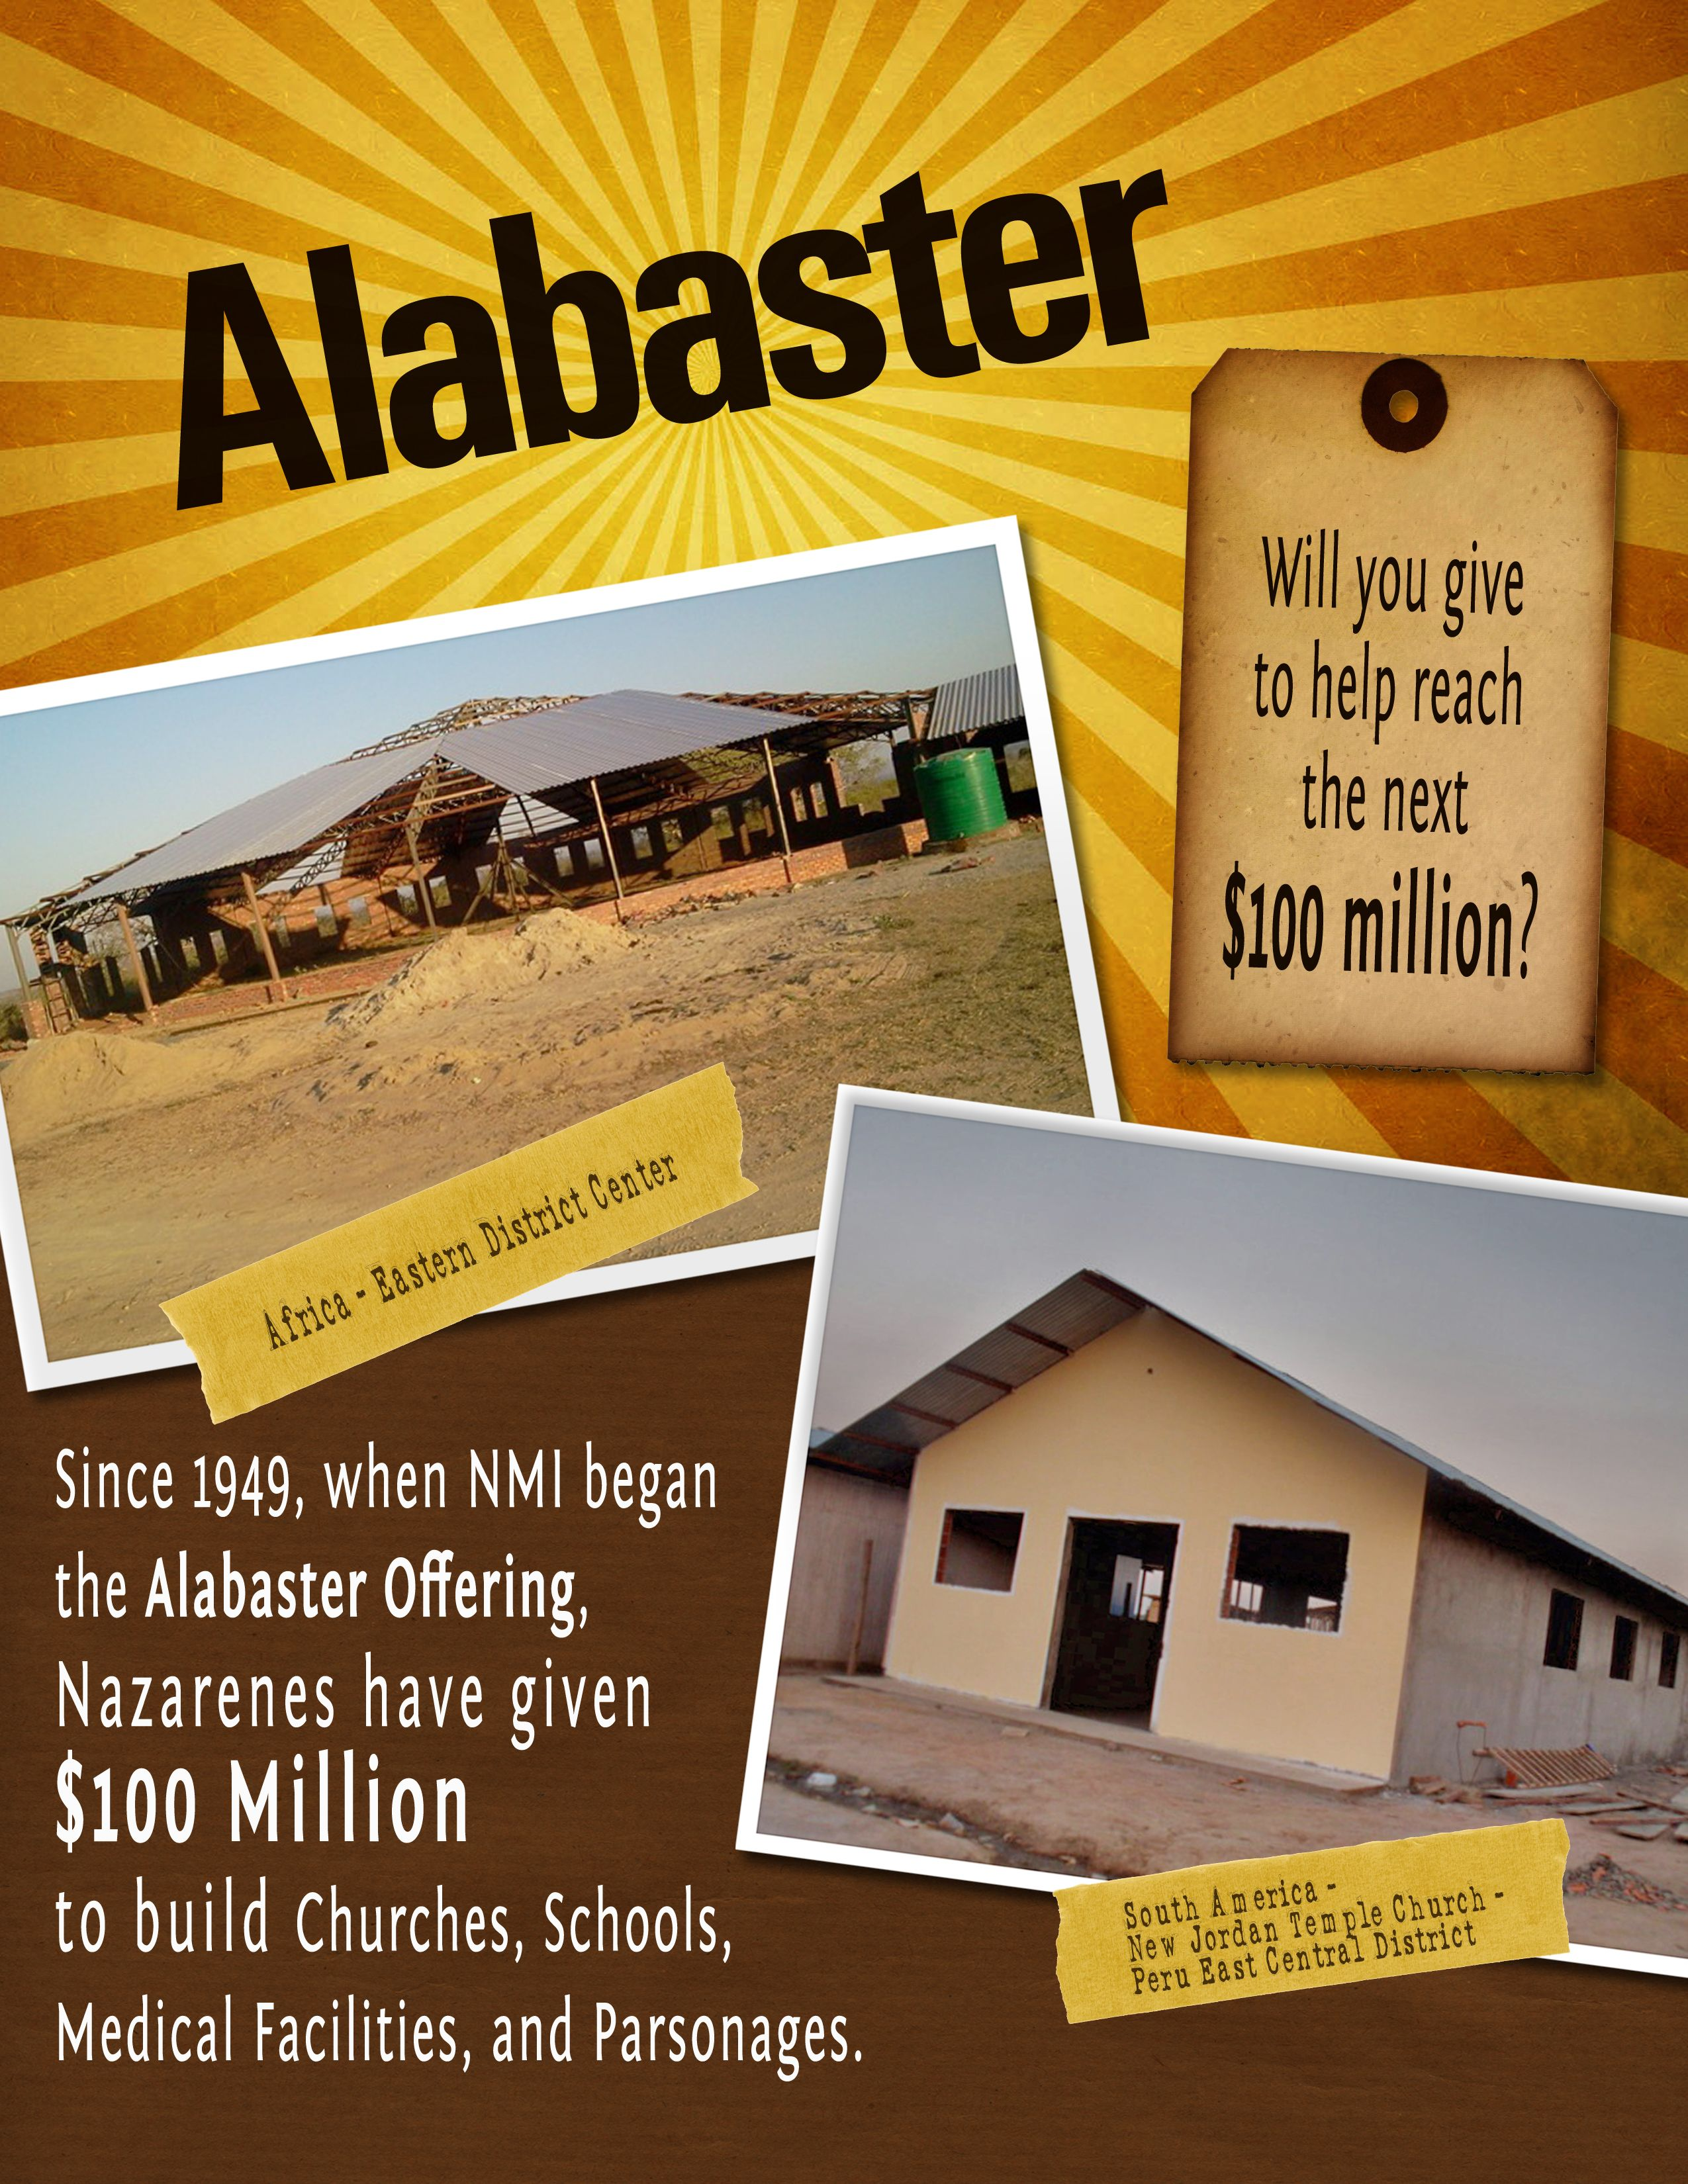 Pray for the Alabaster offering received this month that